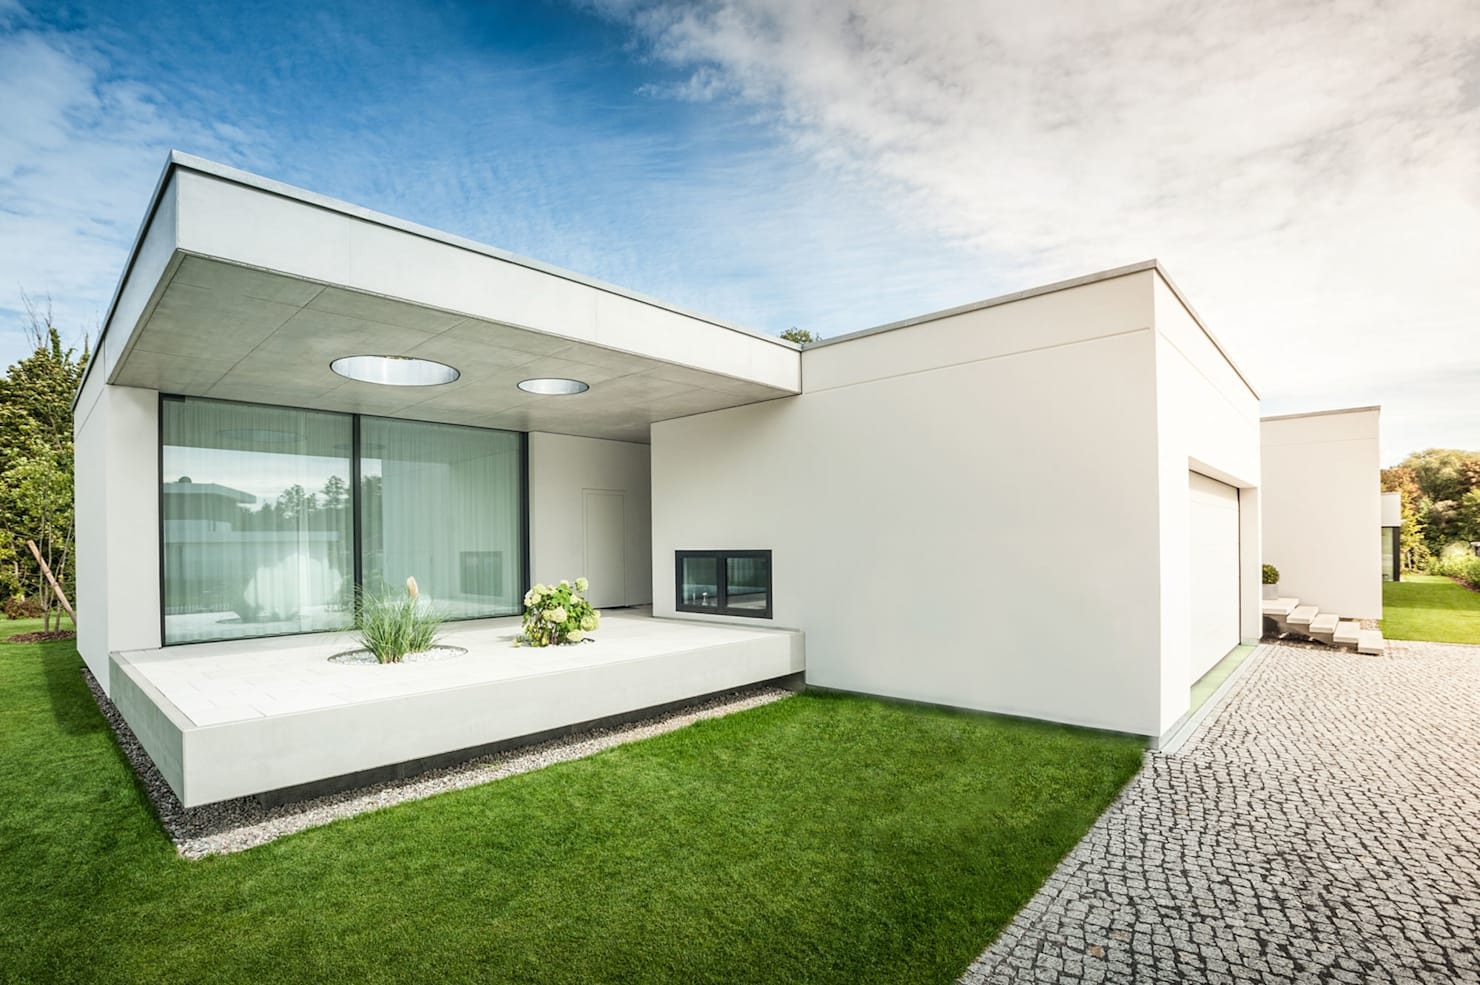 The modern home for the minimalist